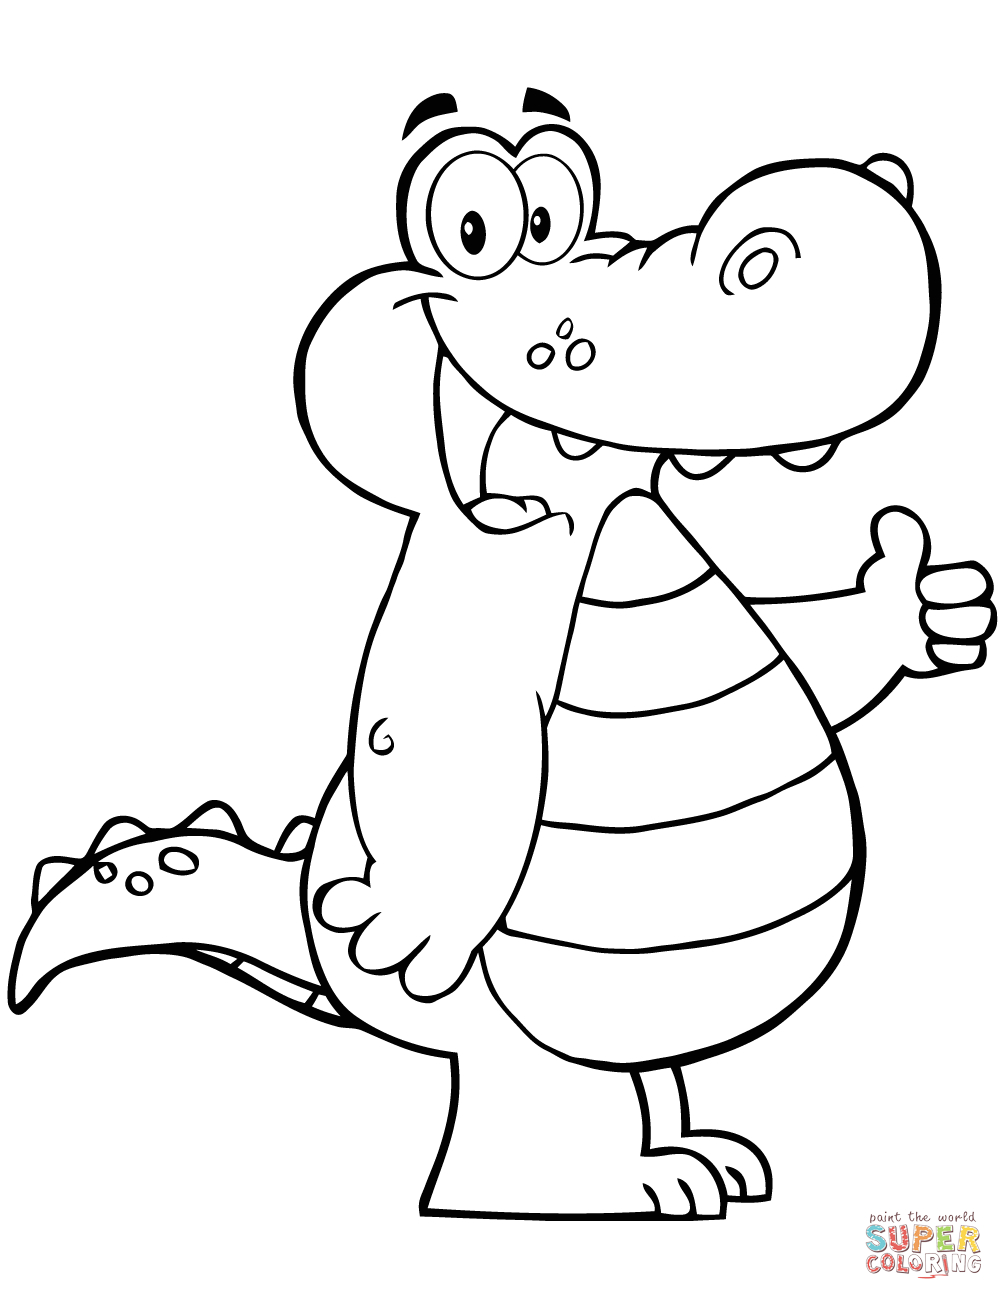 Coloring Page Alligator Cartoon Alligator Coloring Page Free Printable Coloring Pages